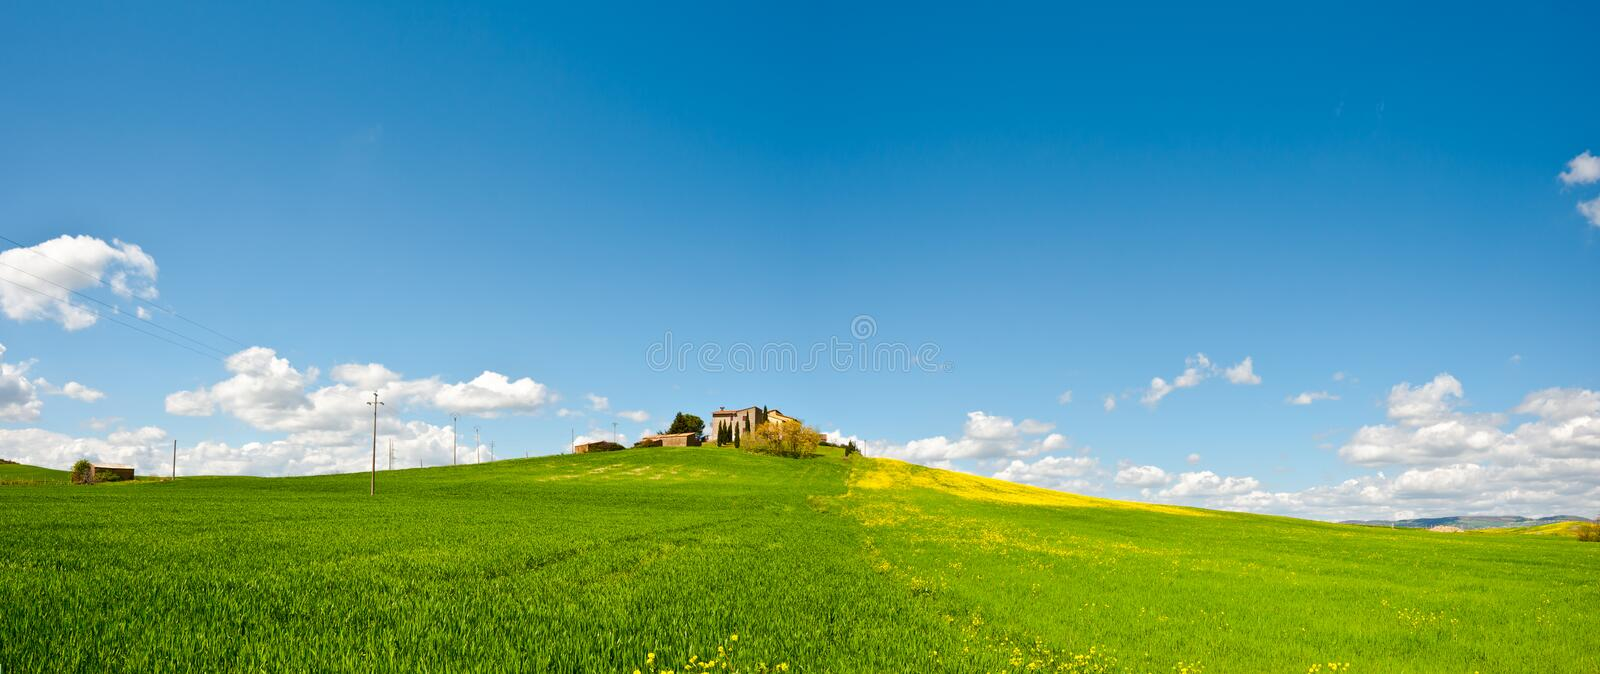 Download Pastoral stock image. Image of outdoor, chianti, mediterranean - 29872391